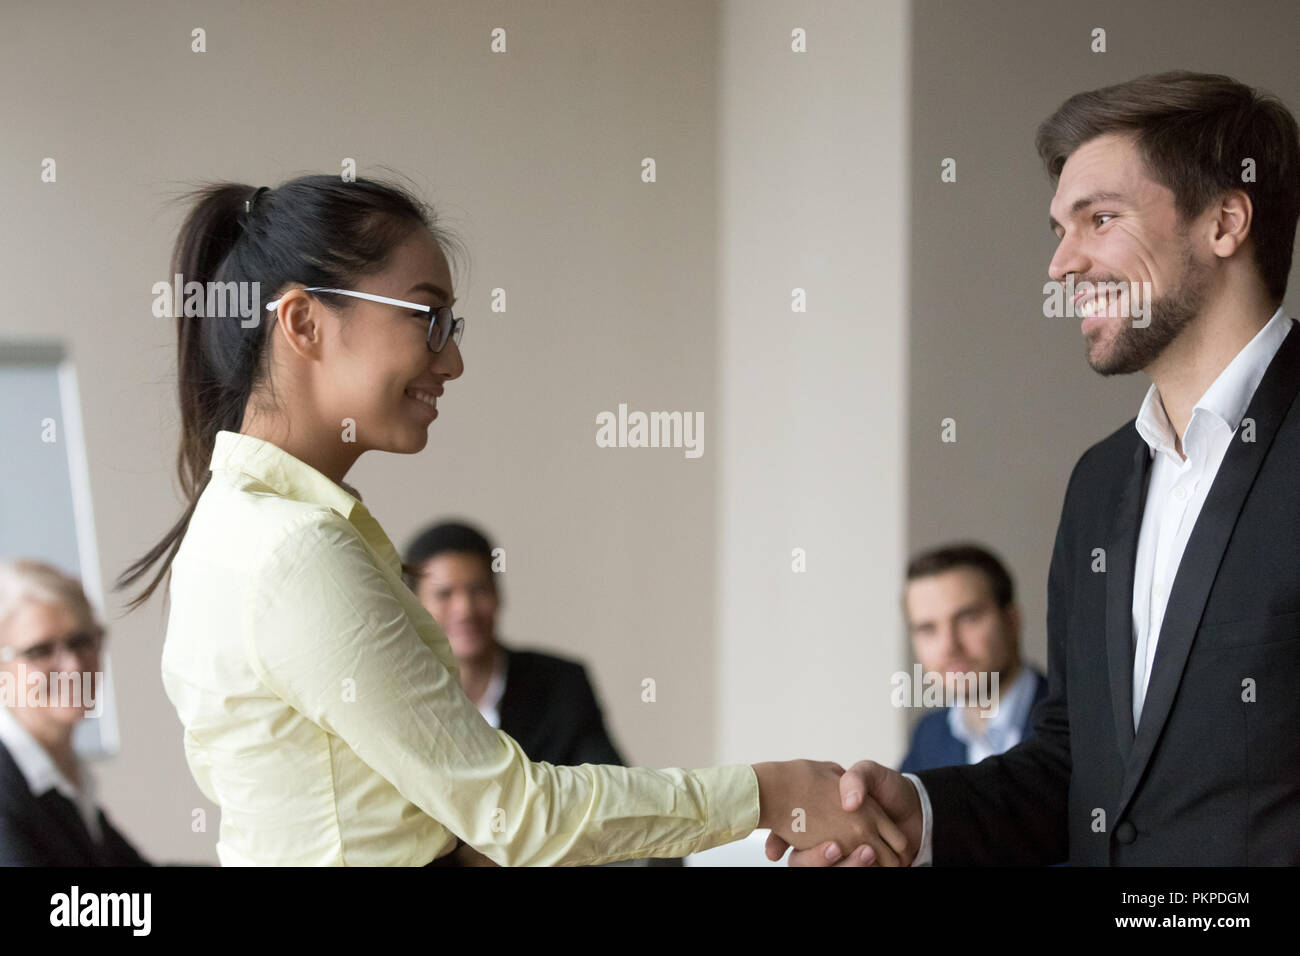 Handshake of two smiling happy business people  - Stock Image